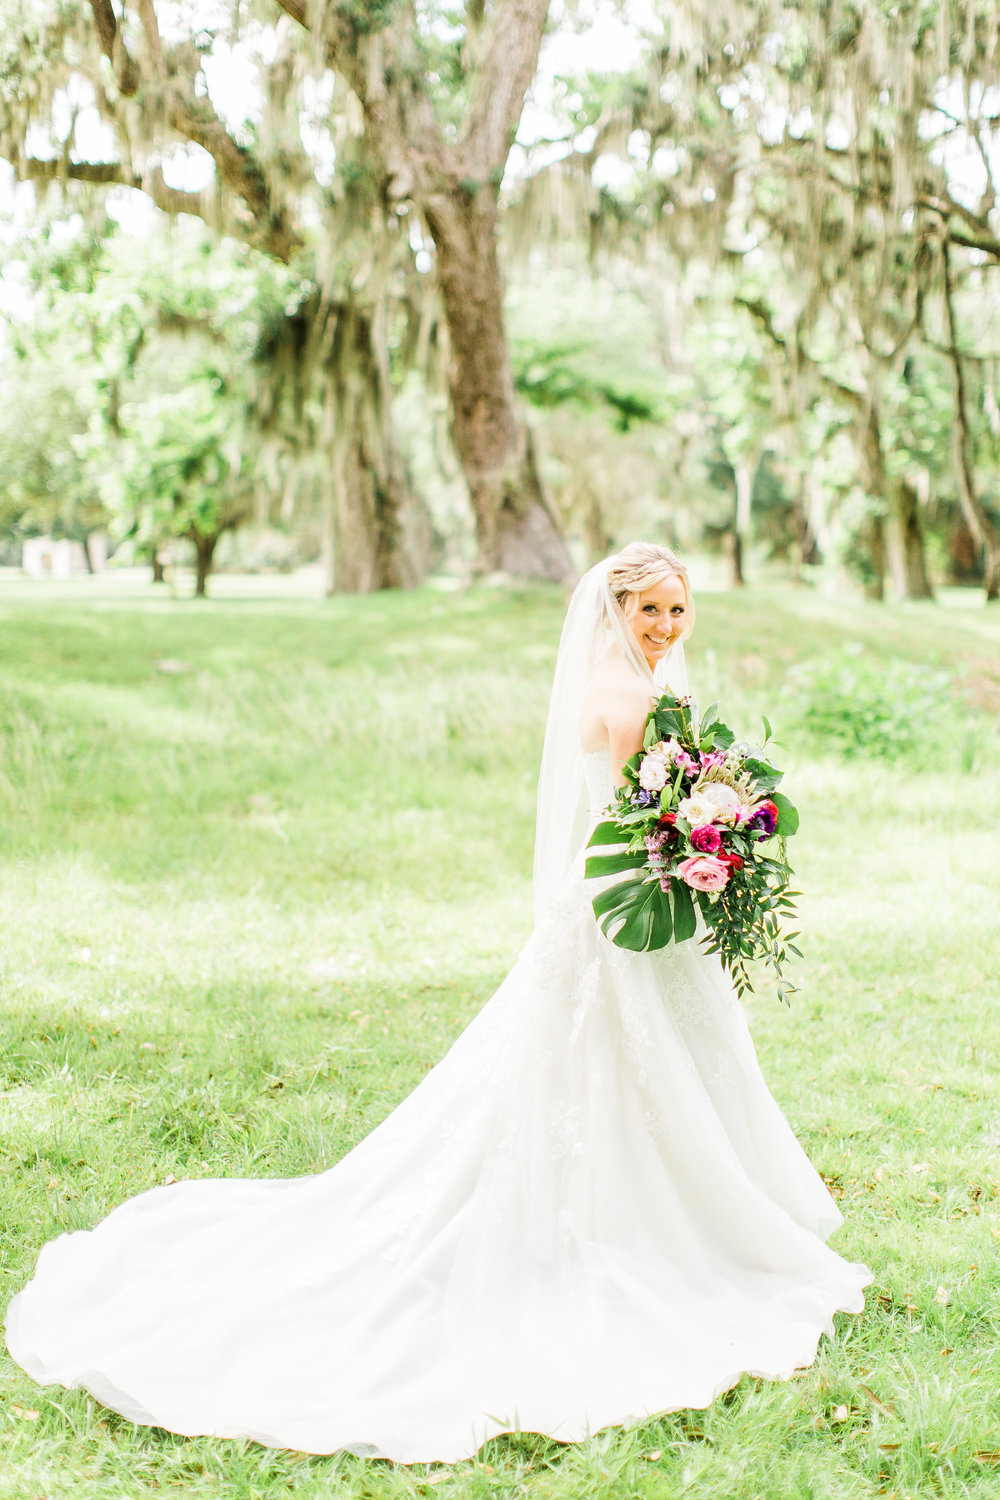 savannah-bridal-shop-i-and-b-couple-gretchen-and-alex-fun-and-unique-tropical-wedding-at-captains-bluff-st-simons-island-wedding-marianne-lucille-photography-17.jpg